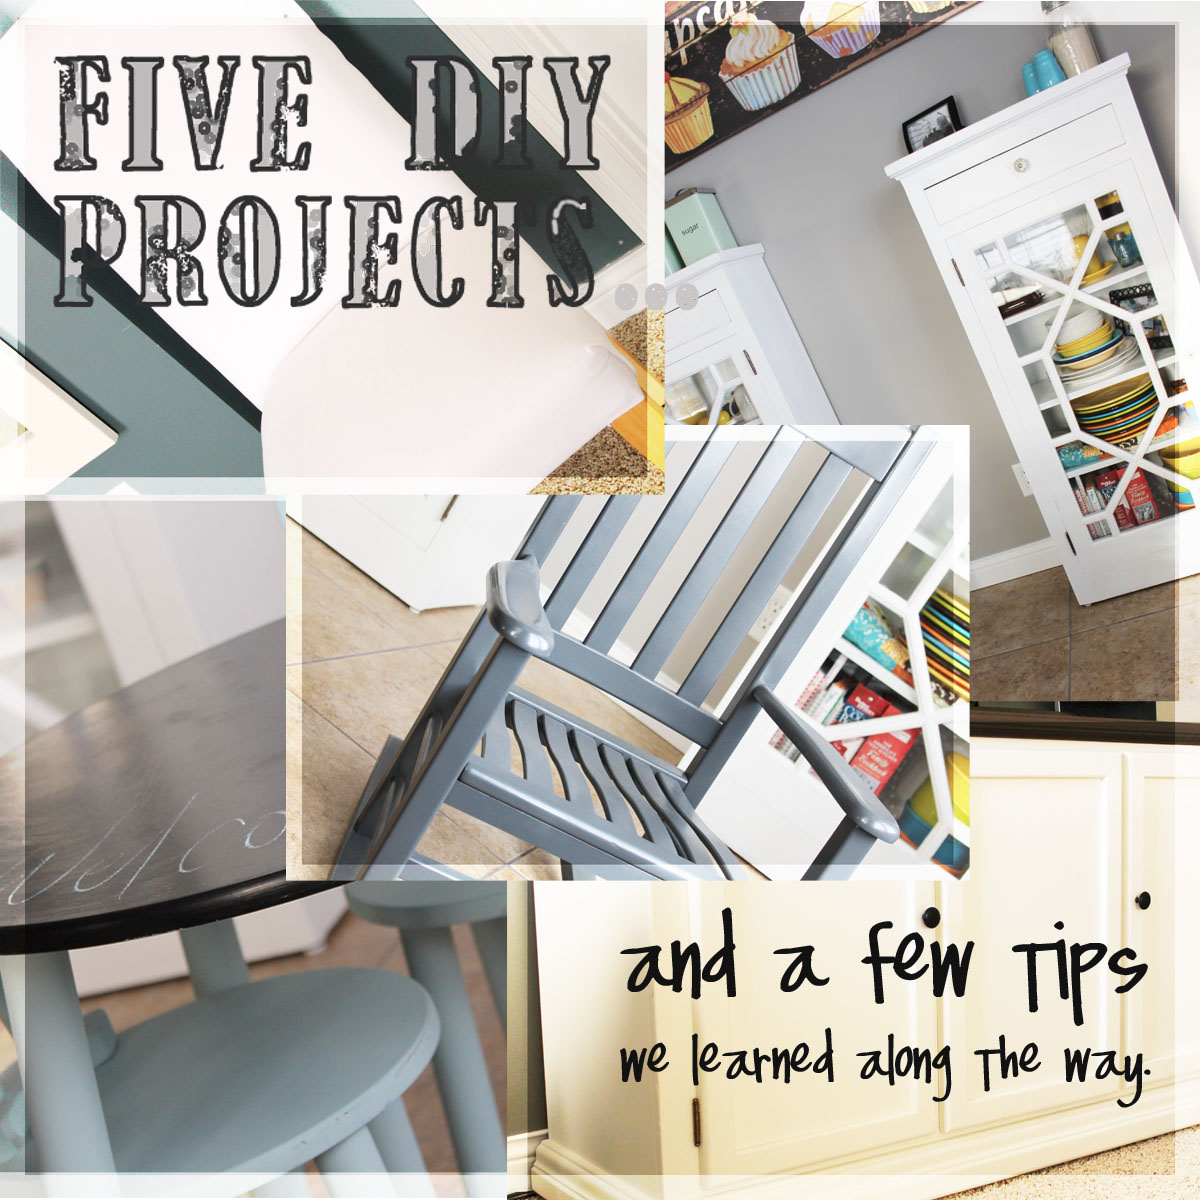 Five DIY Project Ideas for Refinishing Used Furniture